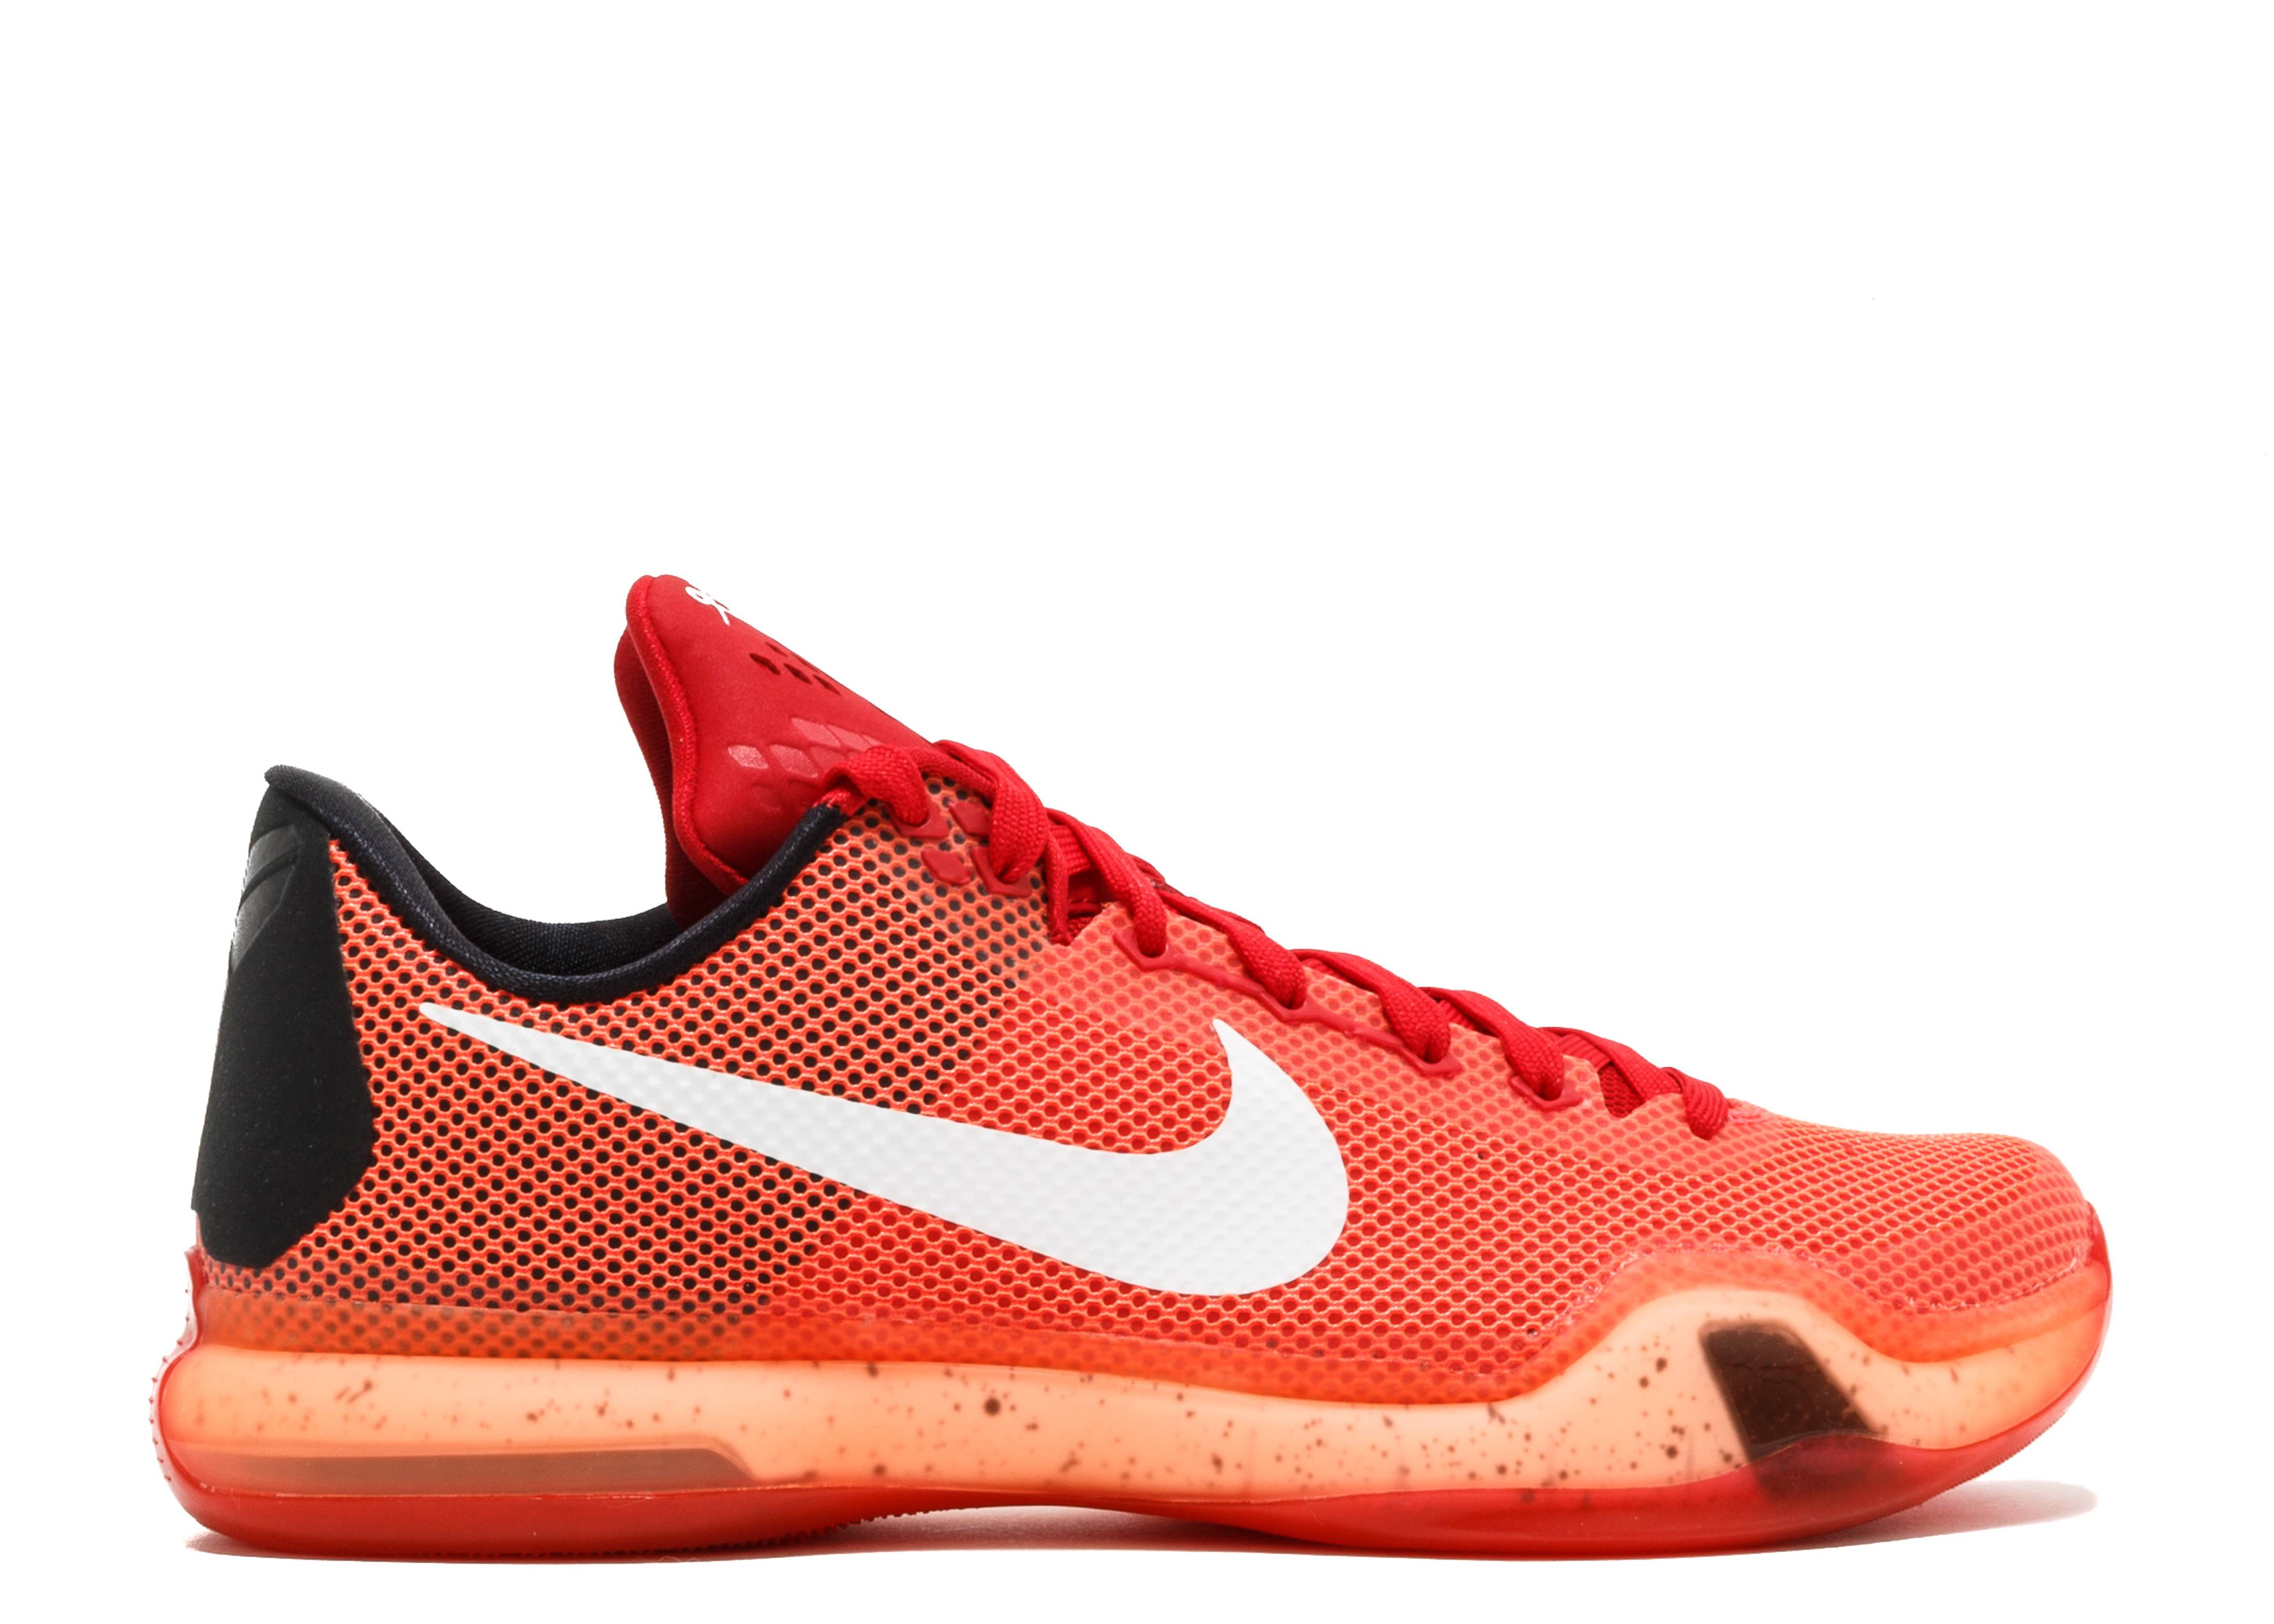 fe85eed868a2 ... new arrivals kobe 10 nike 705317 616 university red white bright crimson  h 03a9e 945a6